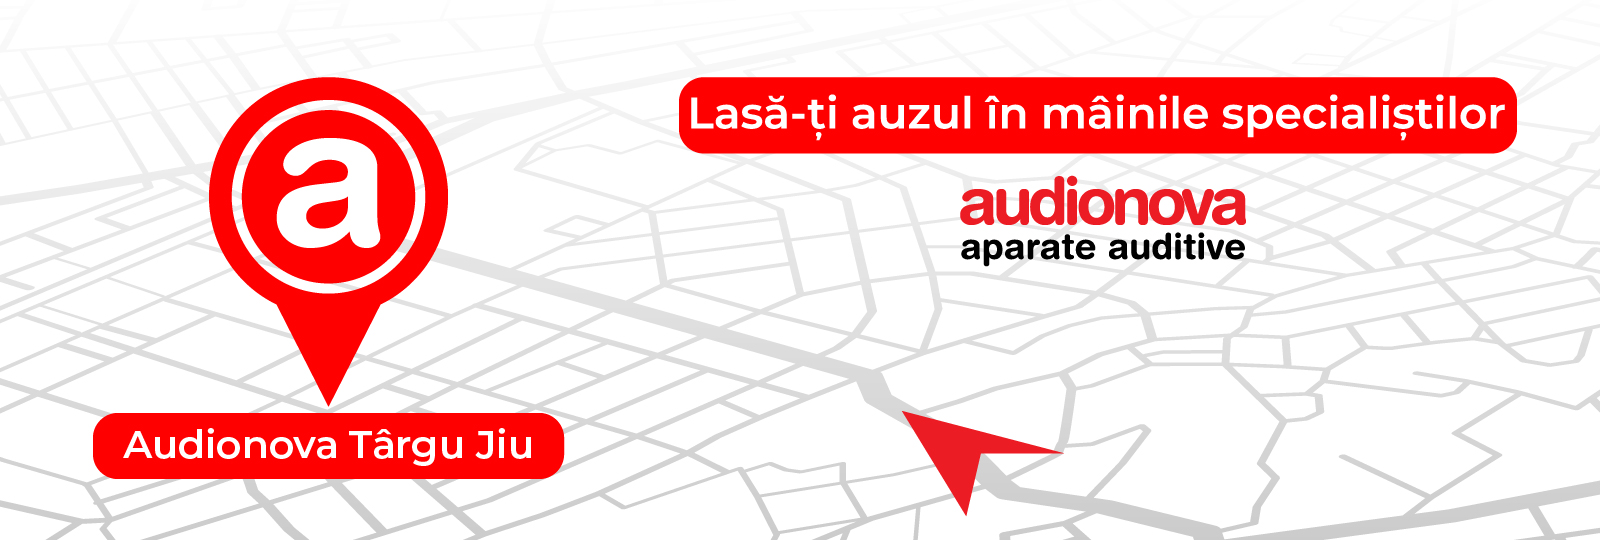 aparate auditive targu jiu